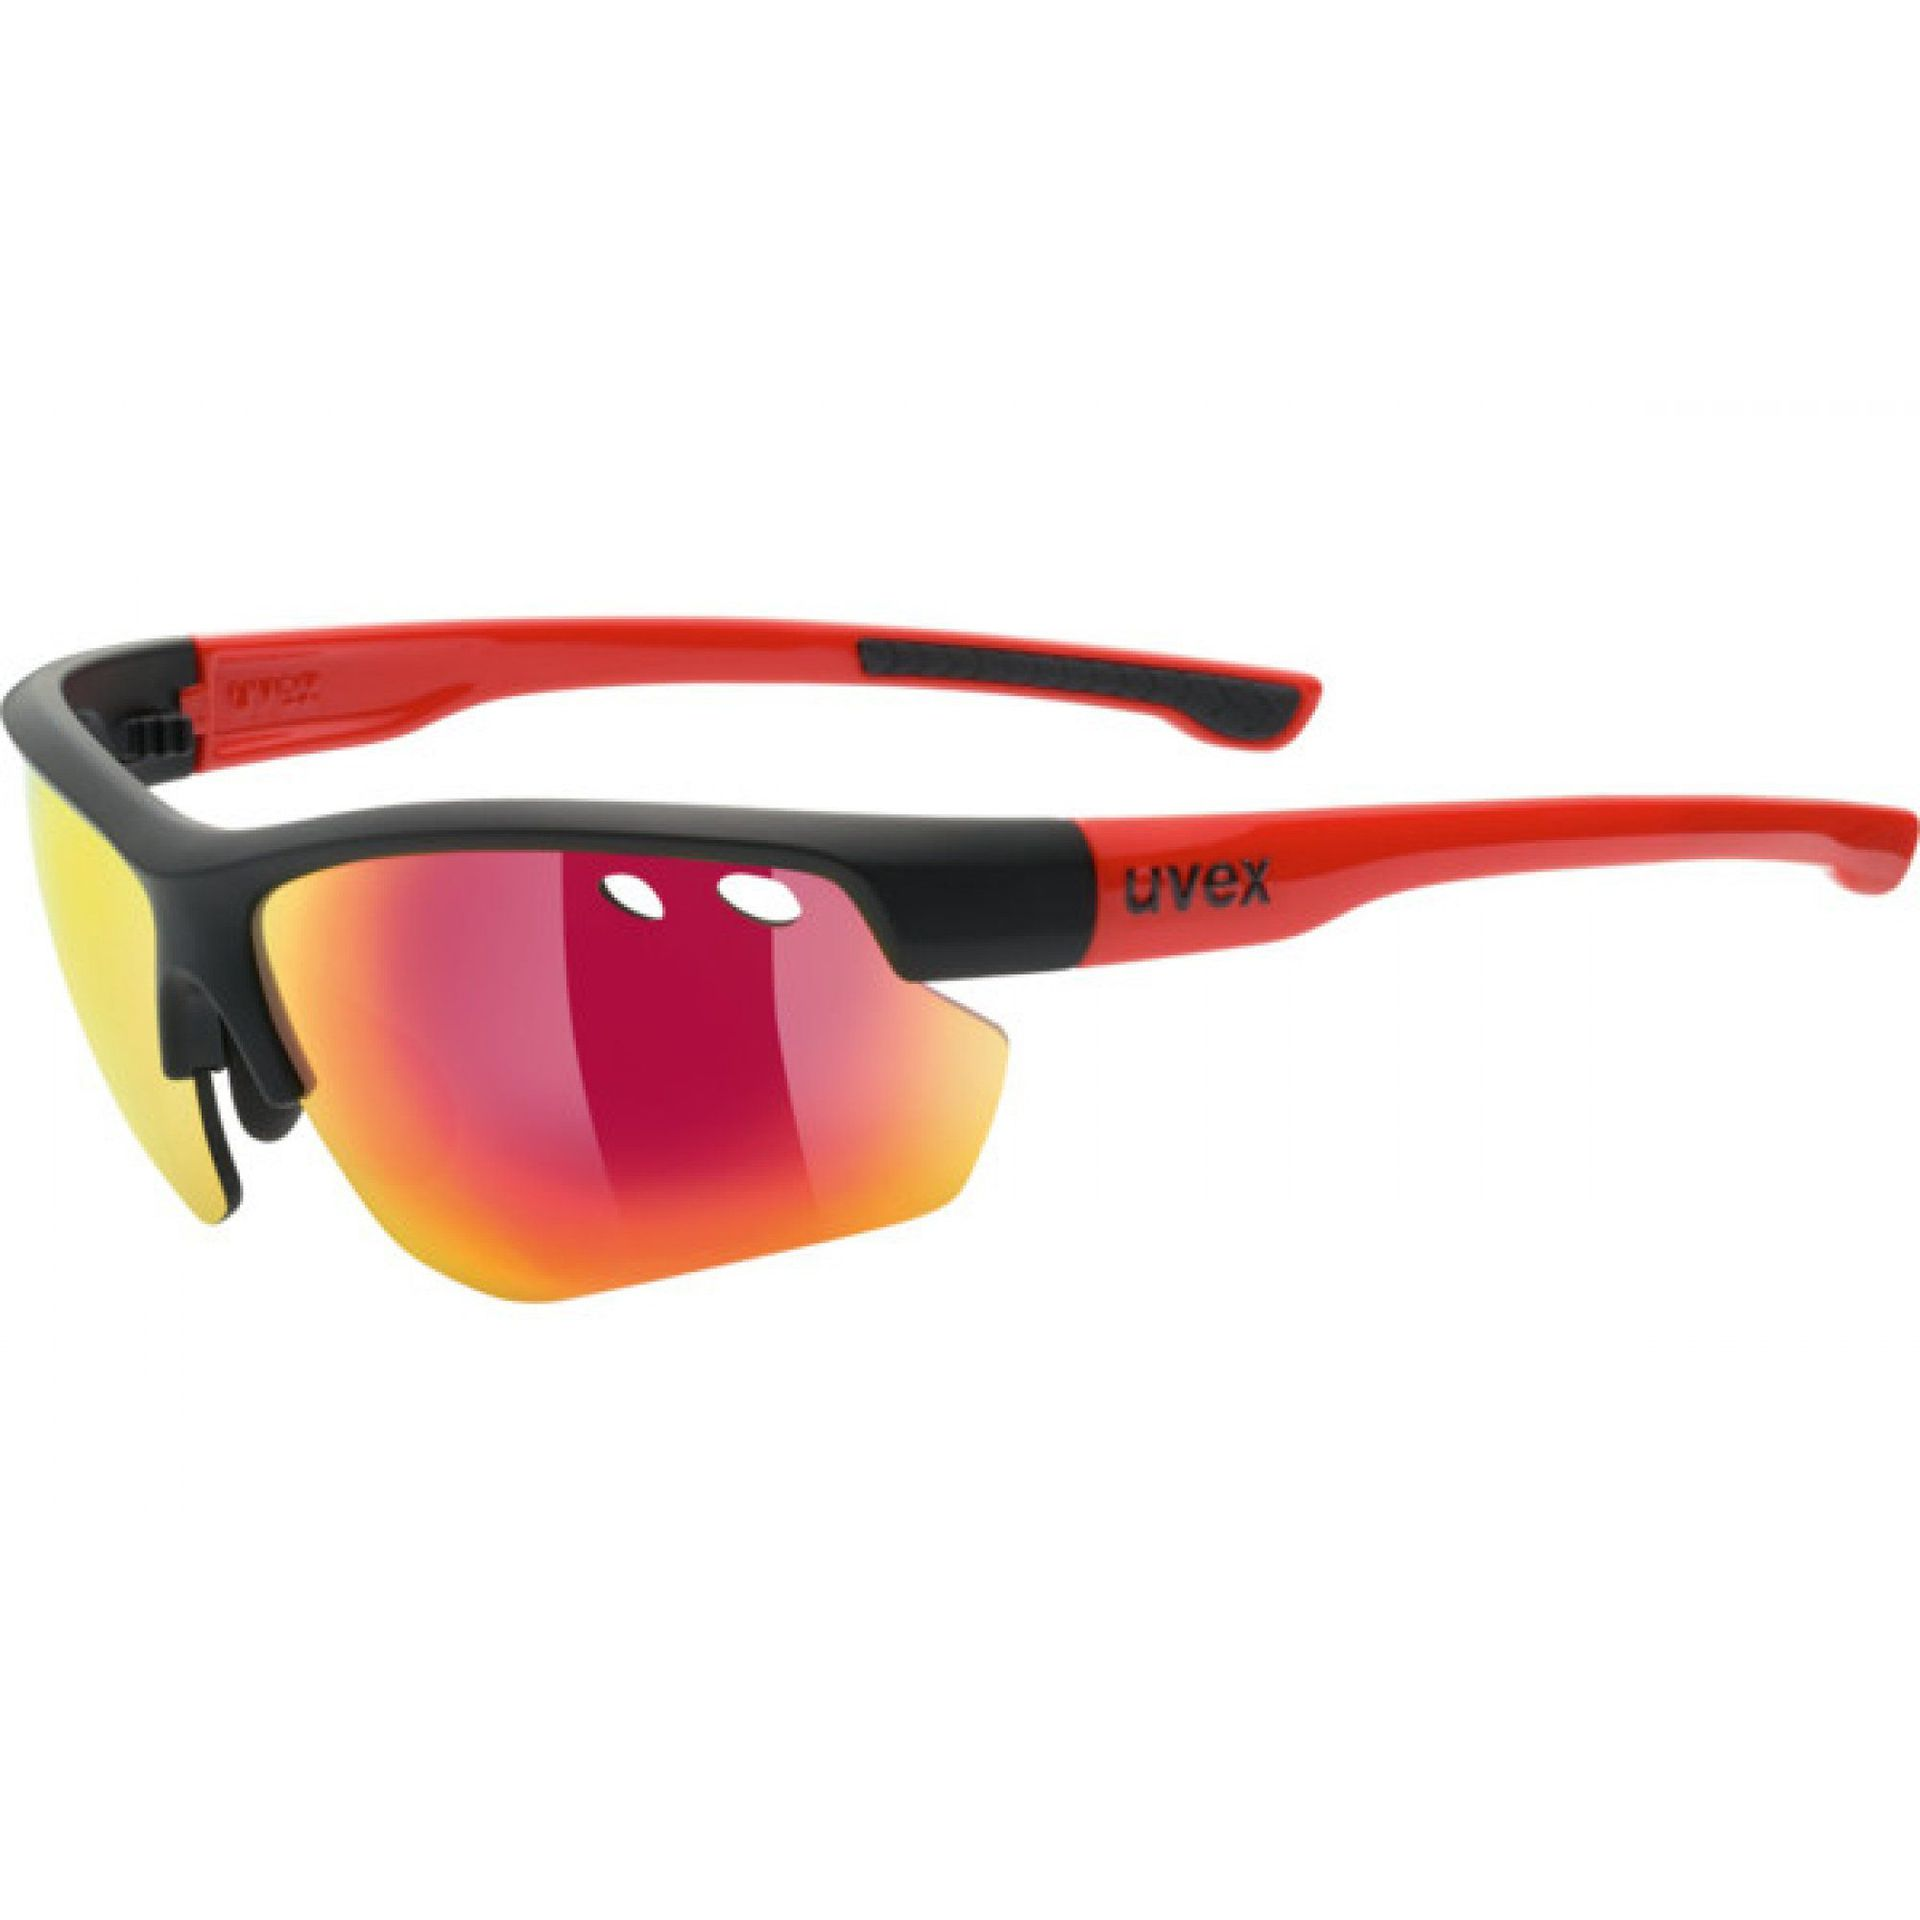 OKULARY UVEX SPORTSTYLE 115 978|2316 BLACK MAT|RED